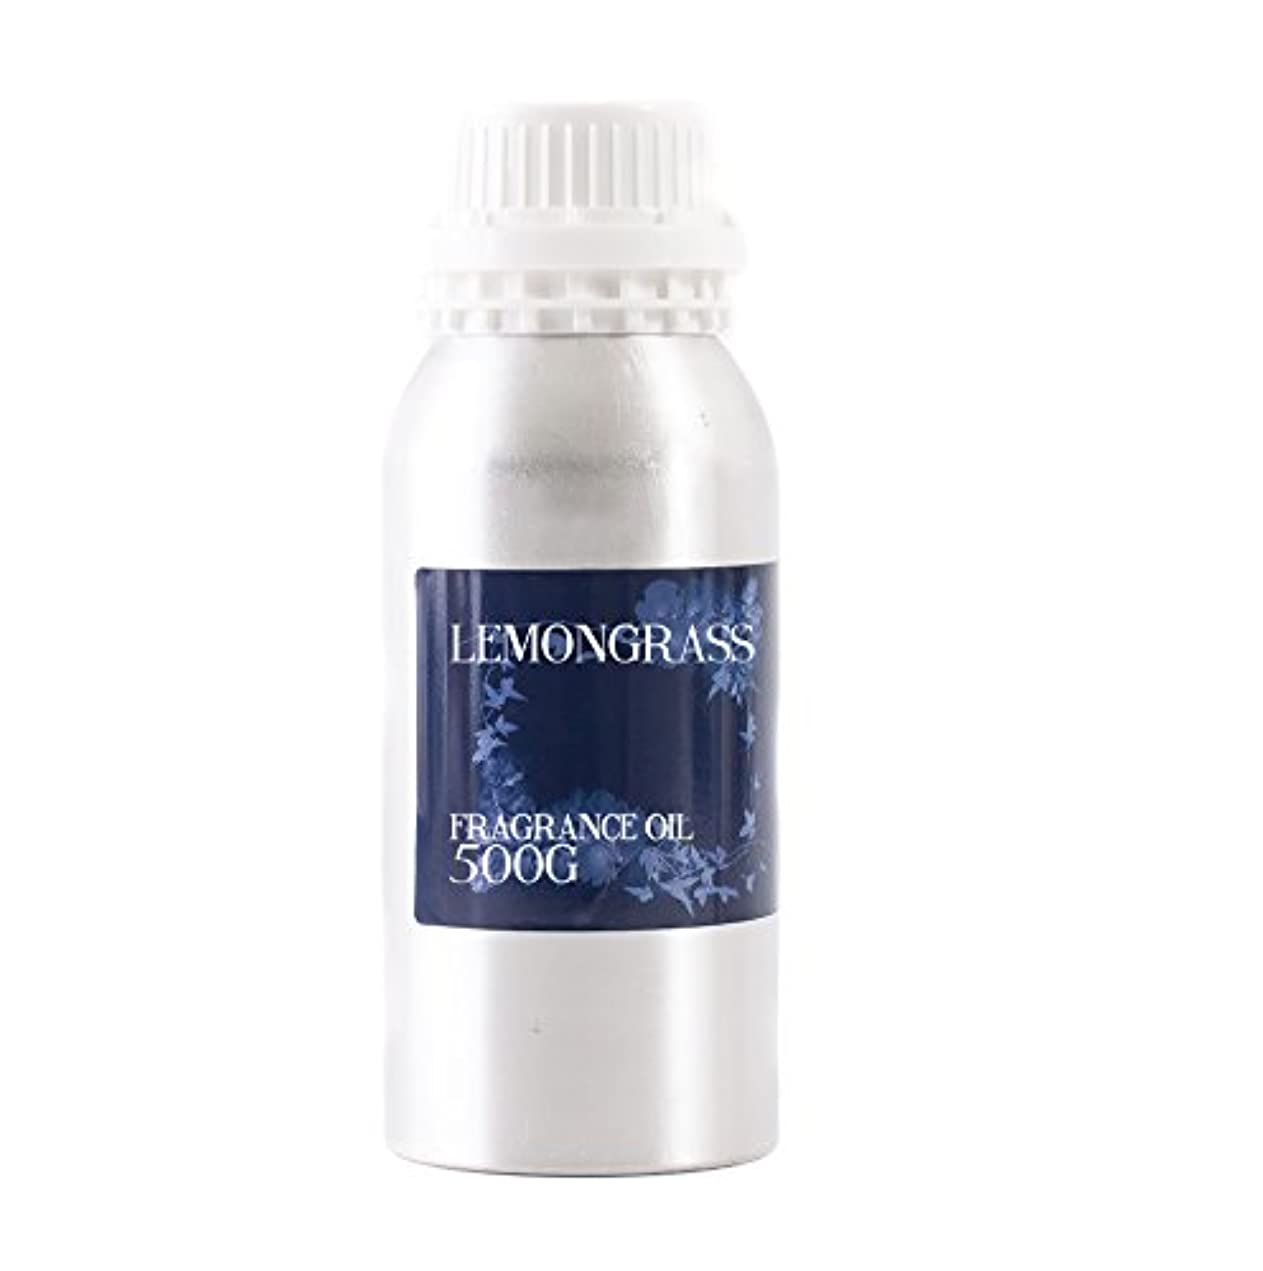 早いラショナルボアMystic Moments | Lemongrass Fragrance Oil - 500g